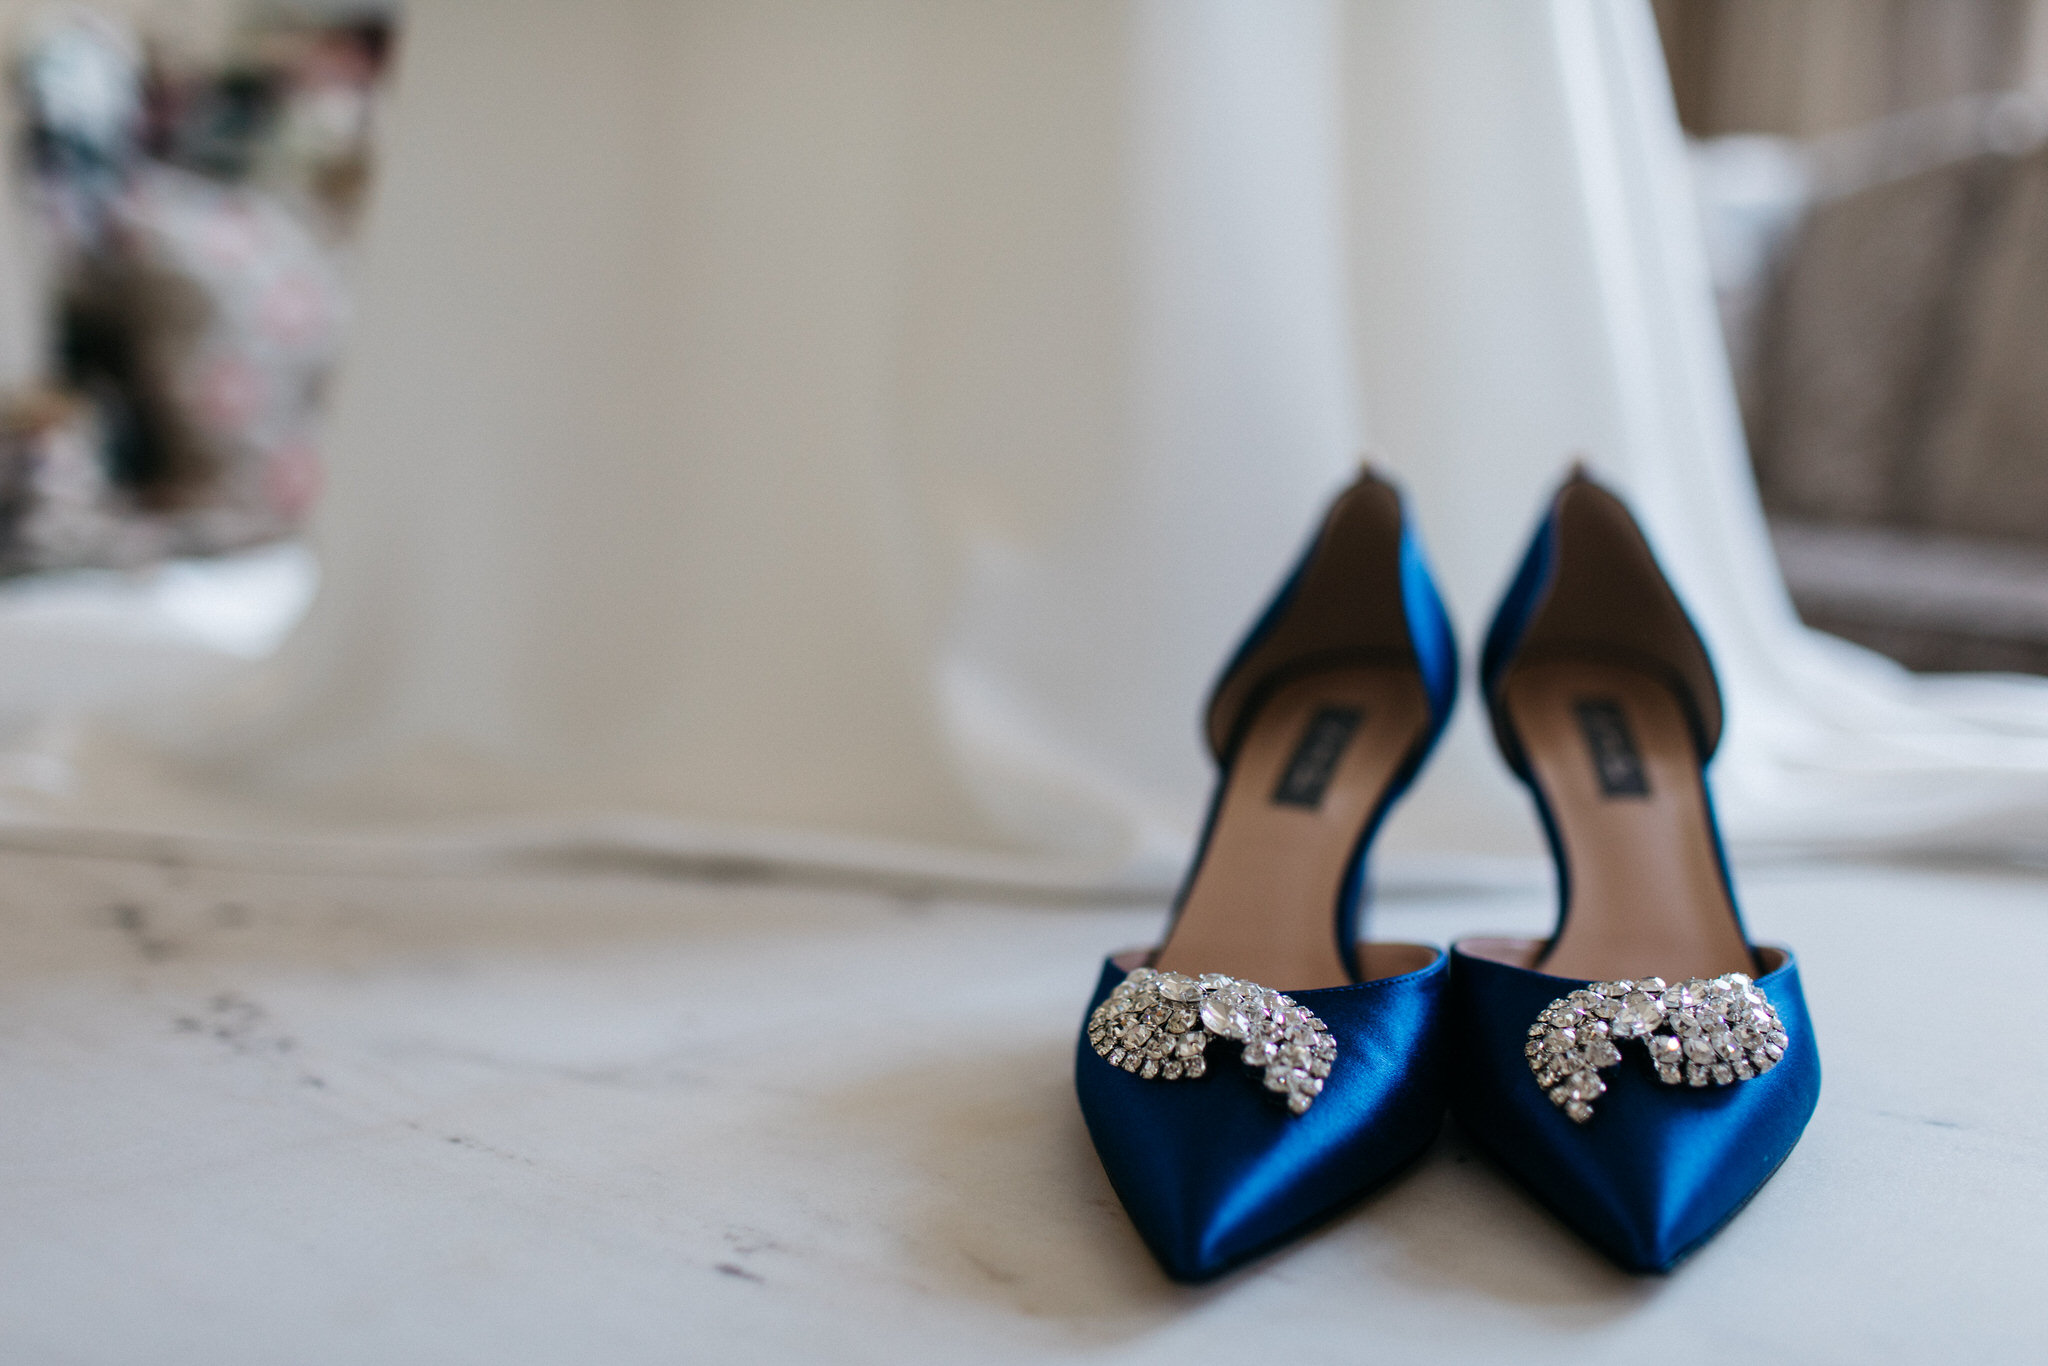 wedding shoes, details, blue, classic, bride, toronto, love, wedding, tradition, wedding dress, wedding details, toronto photography, graydon hall manor wedding, graydon manor